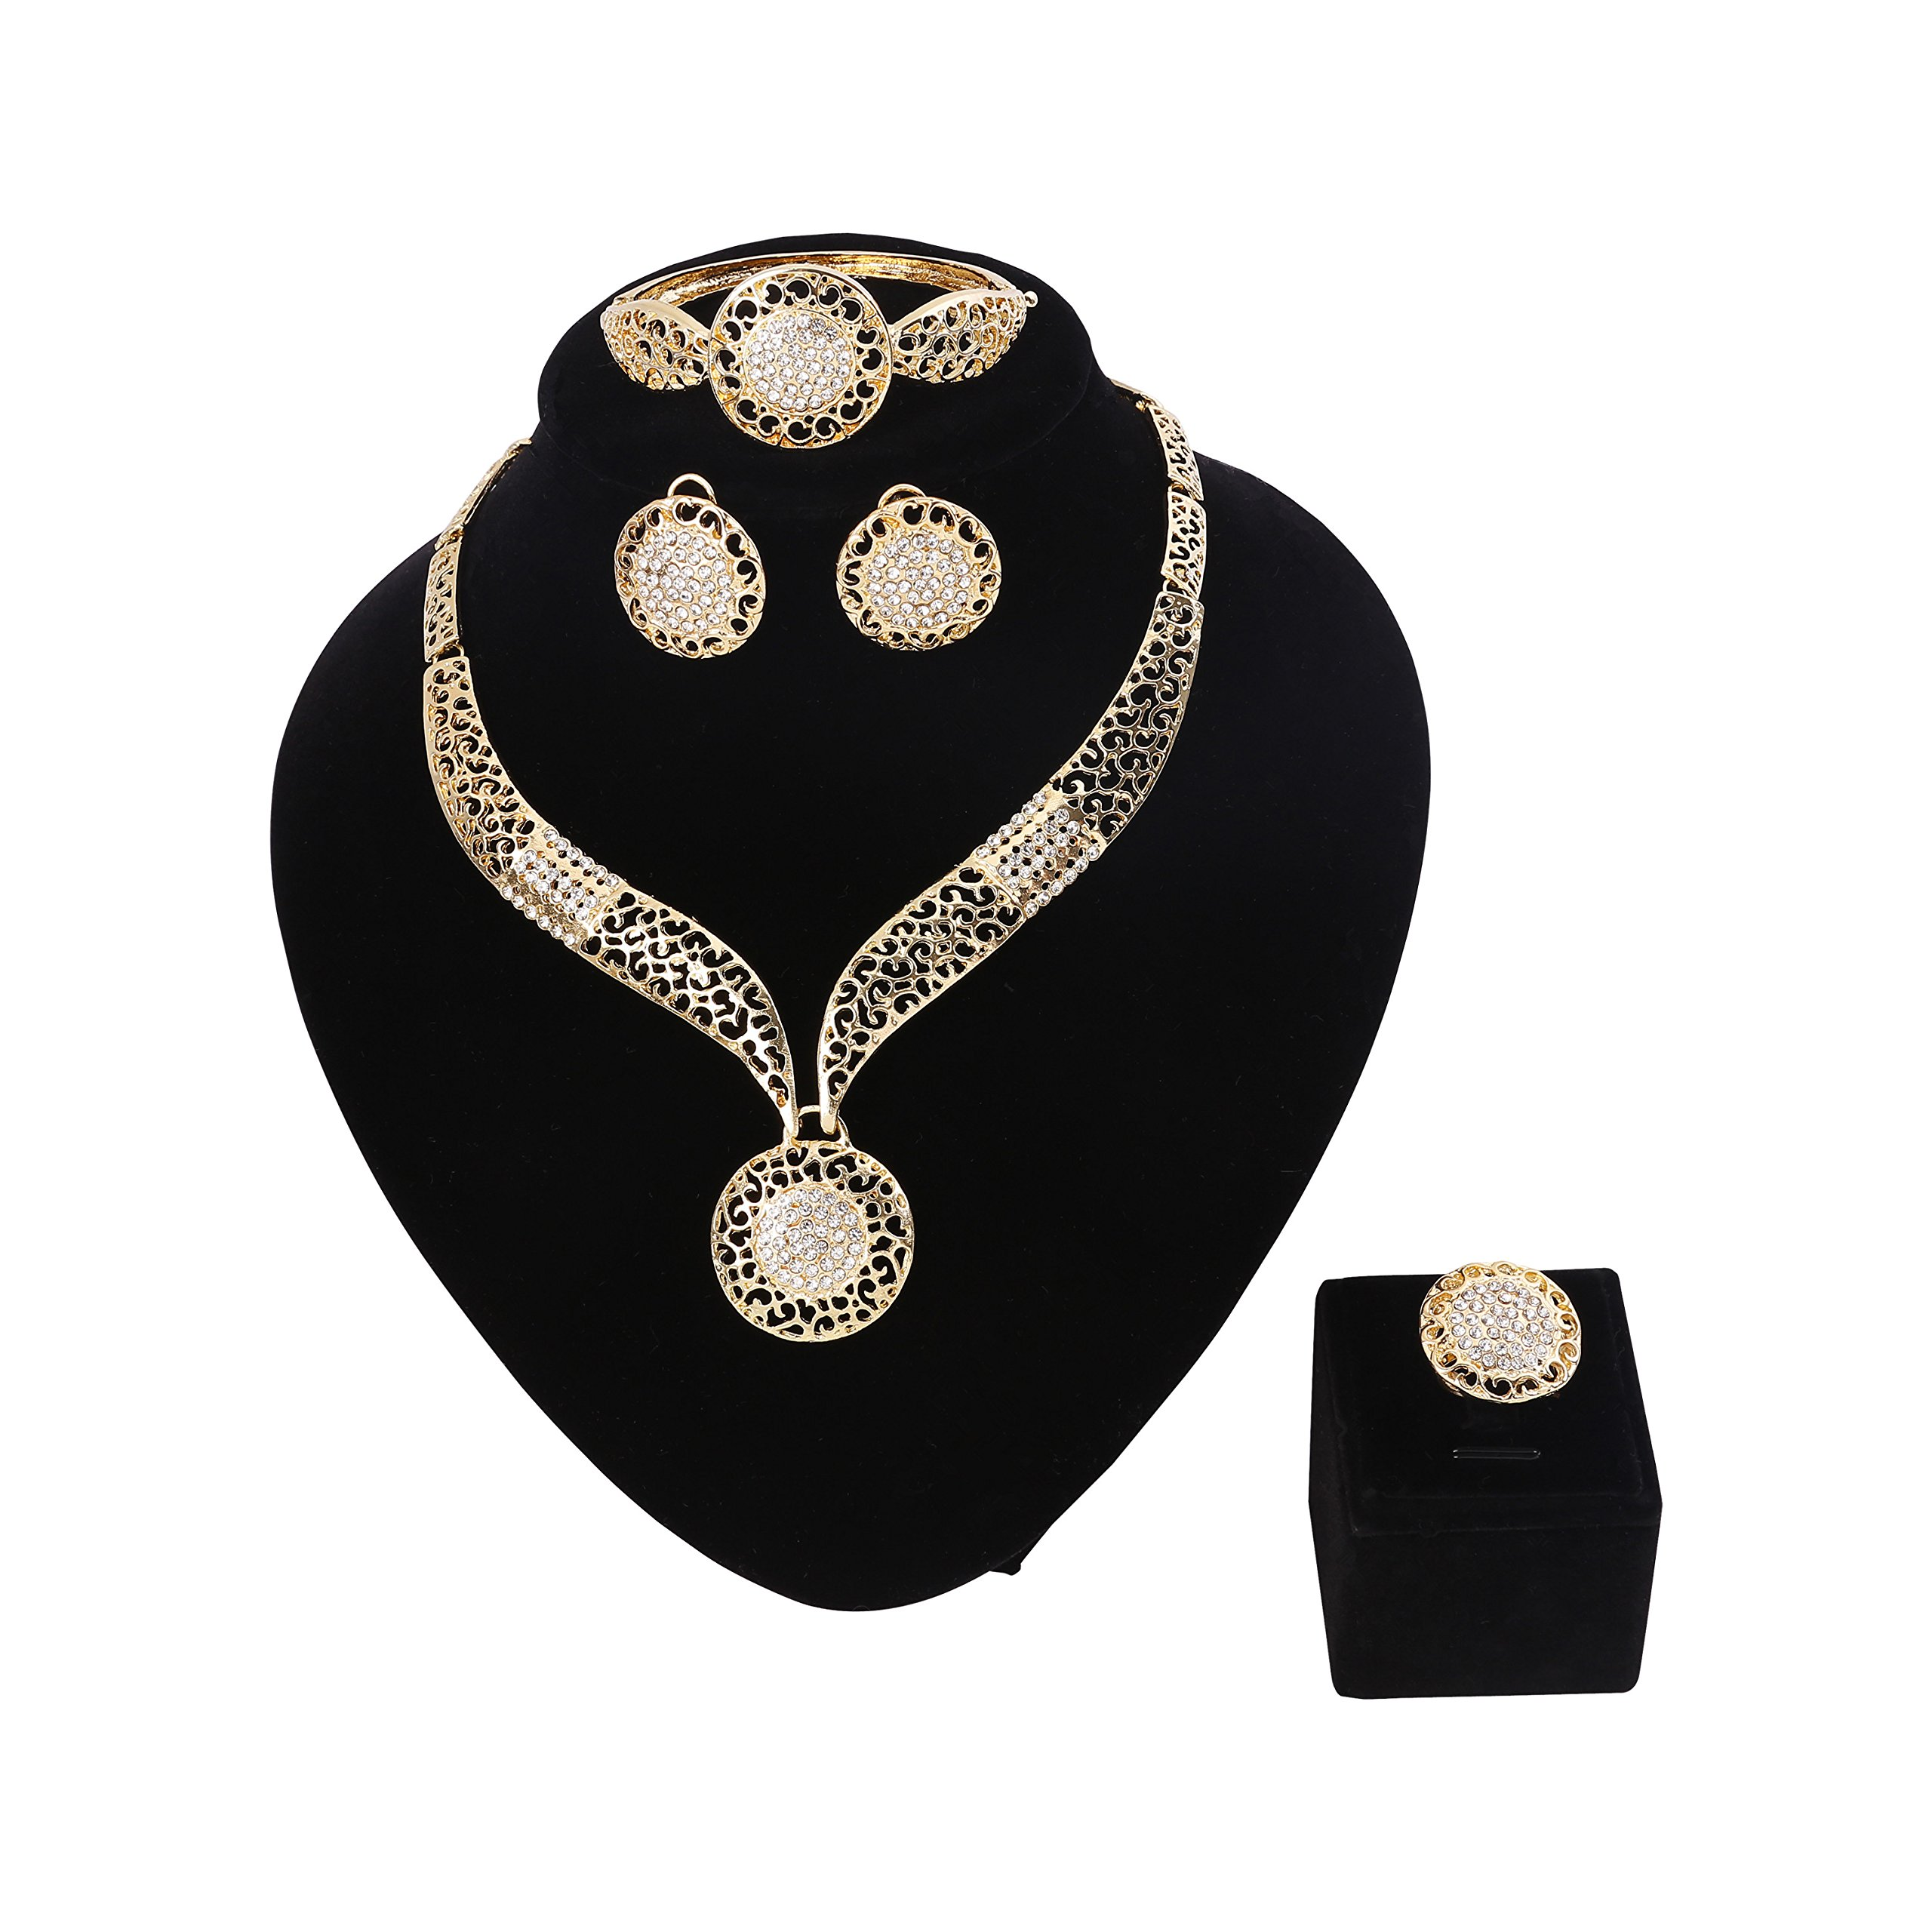 Paxuan Womens Silver Gold Plated Alloy Rhinestone African Jewelry Set Hallow Chain Choker Necklace Stud Earrings Cuff Bangle Bracelet Ring Set (Gold)